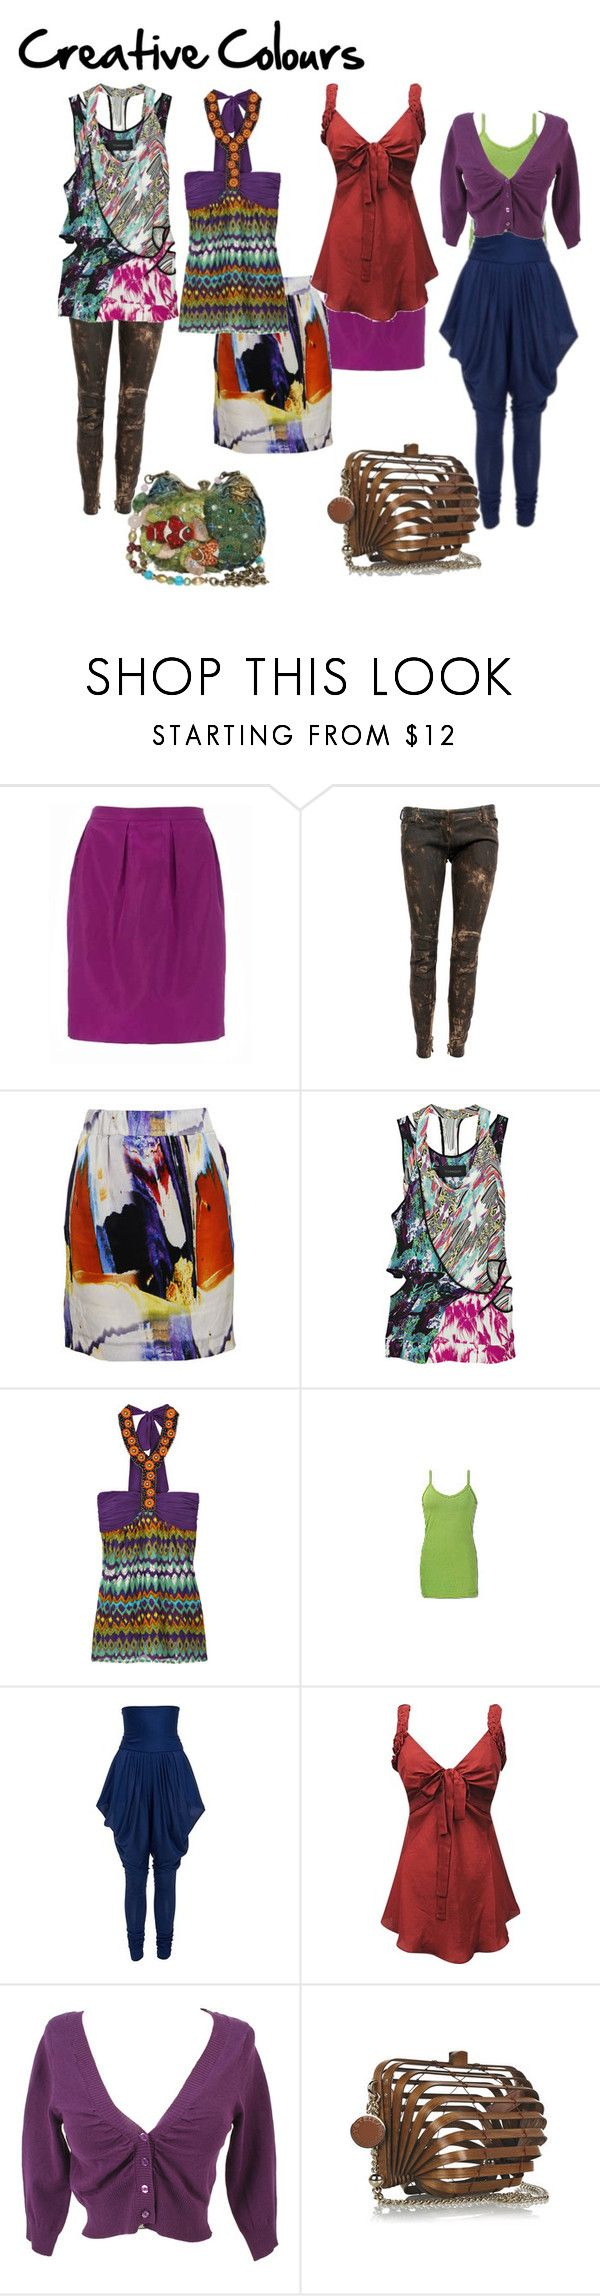 """""""Creative Colours"""" by imogenl ❤ liked on Polyvore featuring Balmain, Cathy Pill, Thakoon, Single, BKE, Alexander McQueen, YOANA BARASCHI, STELLA McCARTNEY, Finders Keepers and colour guide"""